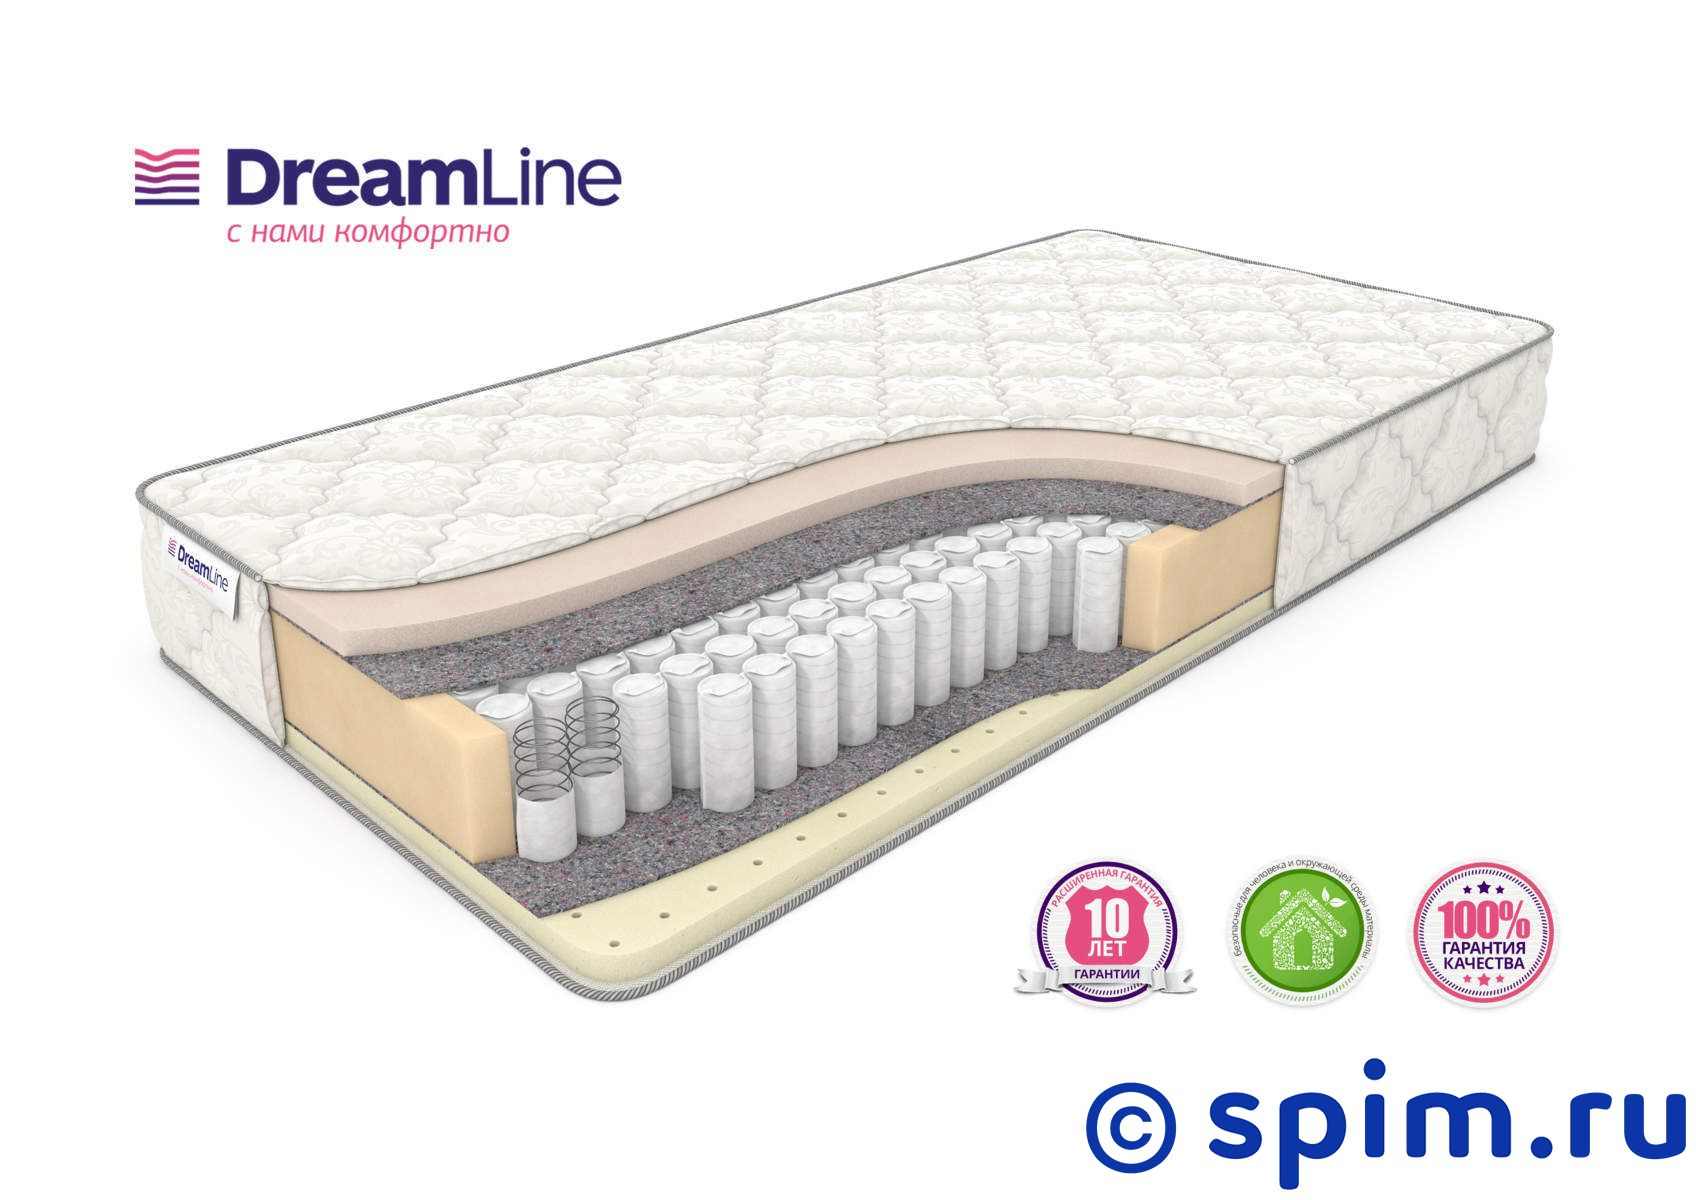 Матрас DreamLine Memory Sleep Tfk 150х195 см